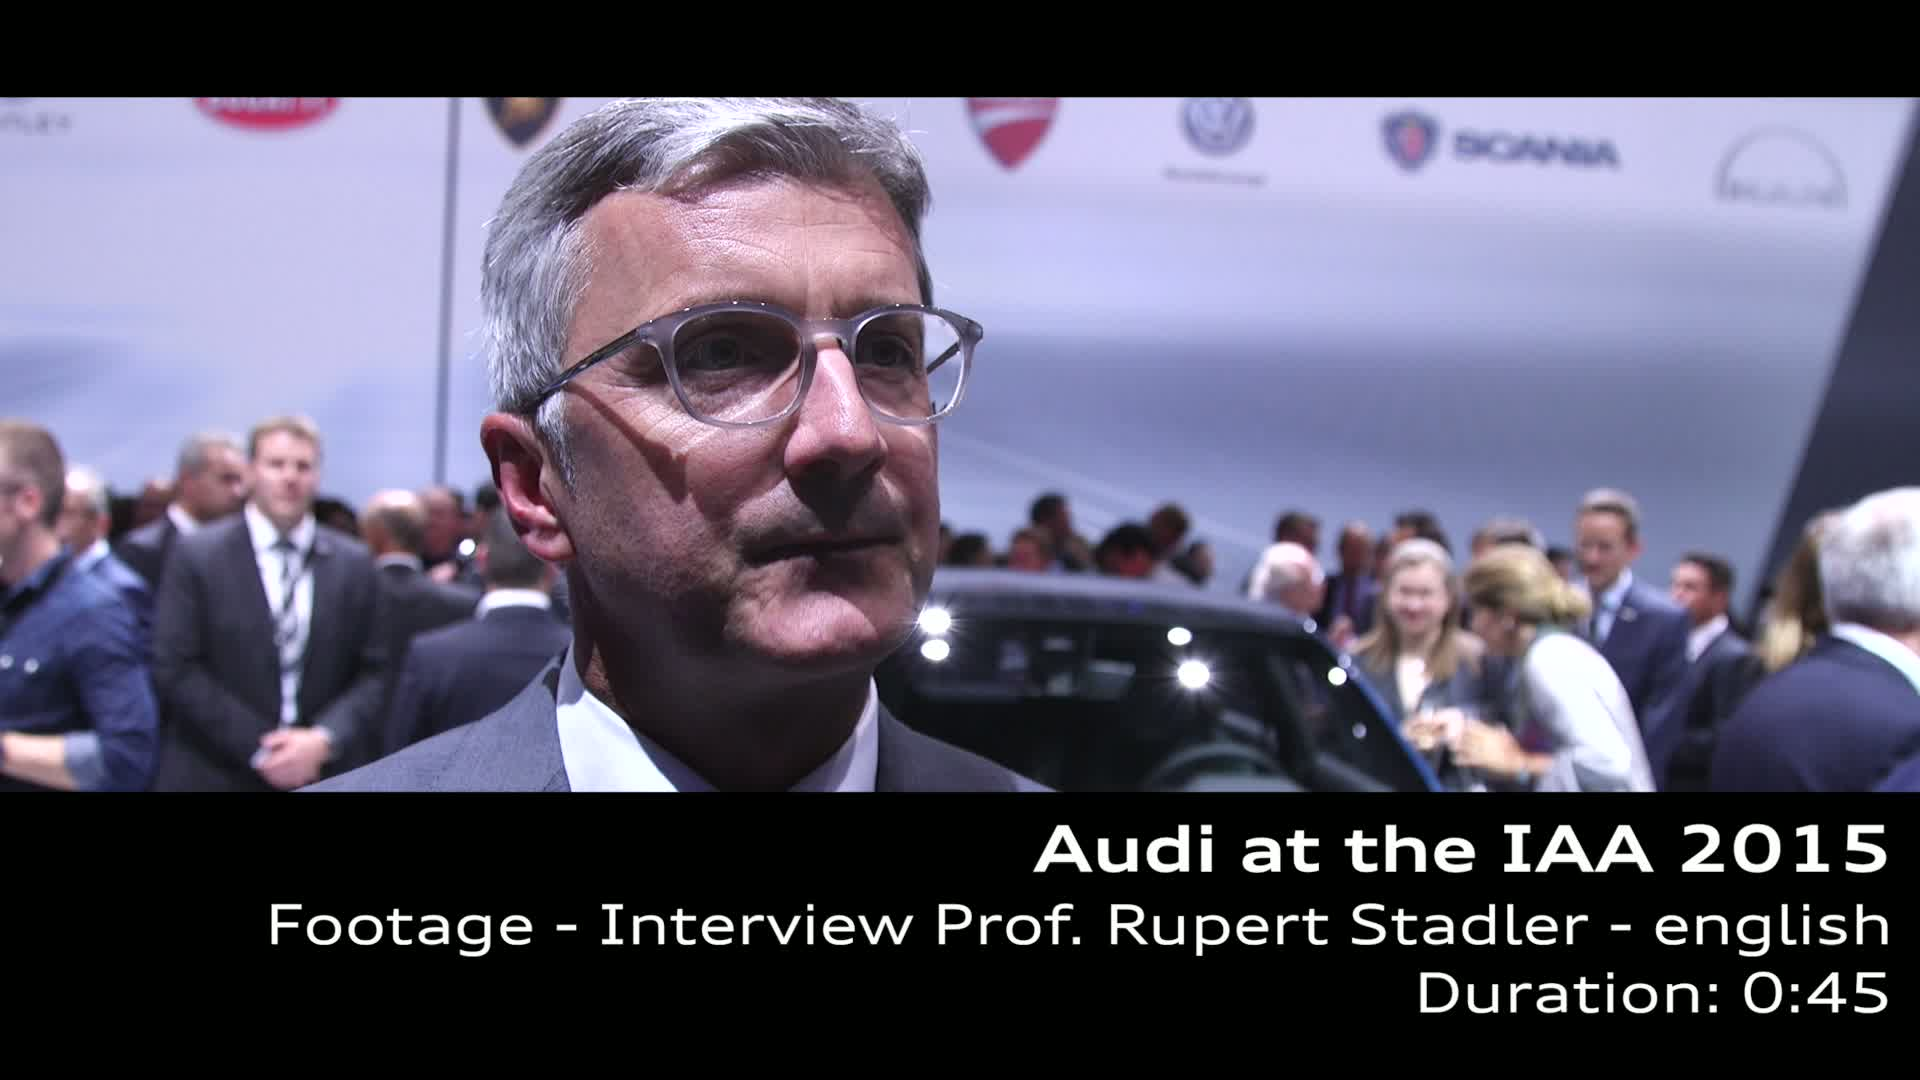 Prof. Rupert Stadler at the IAA 2015 - Footage